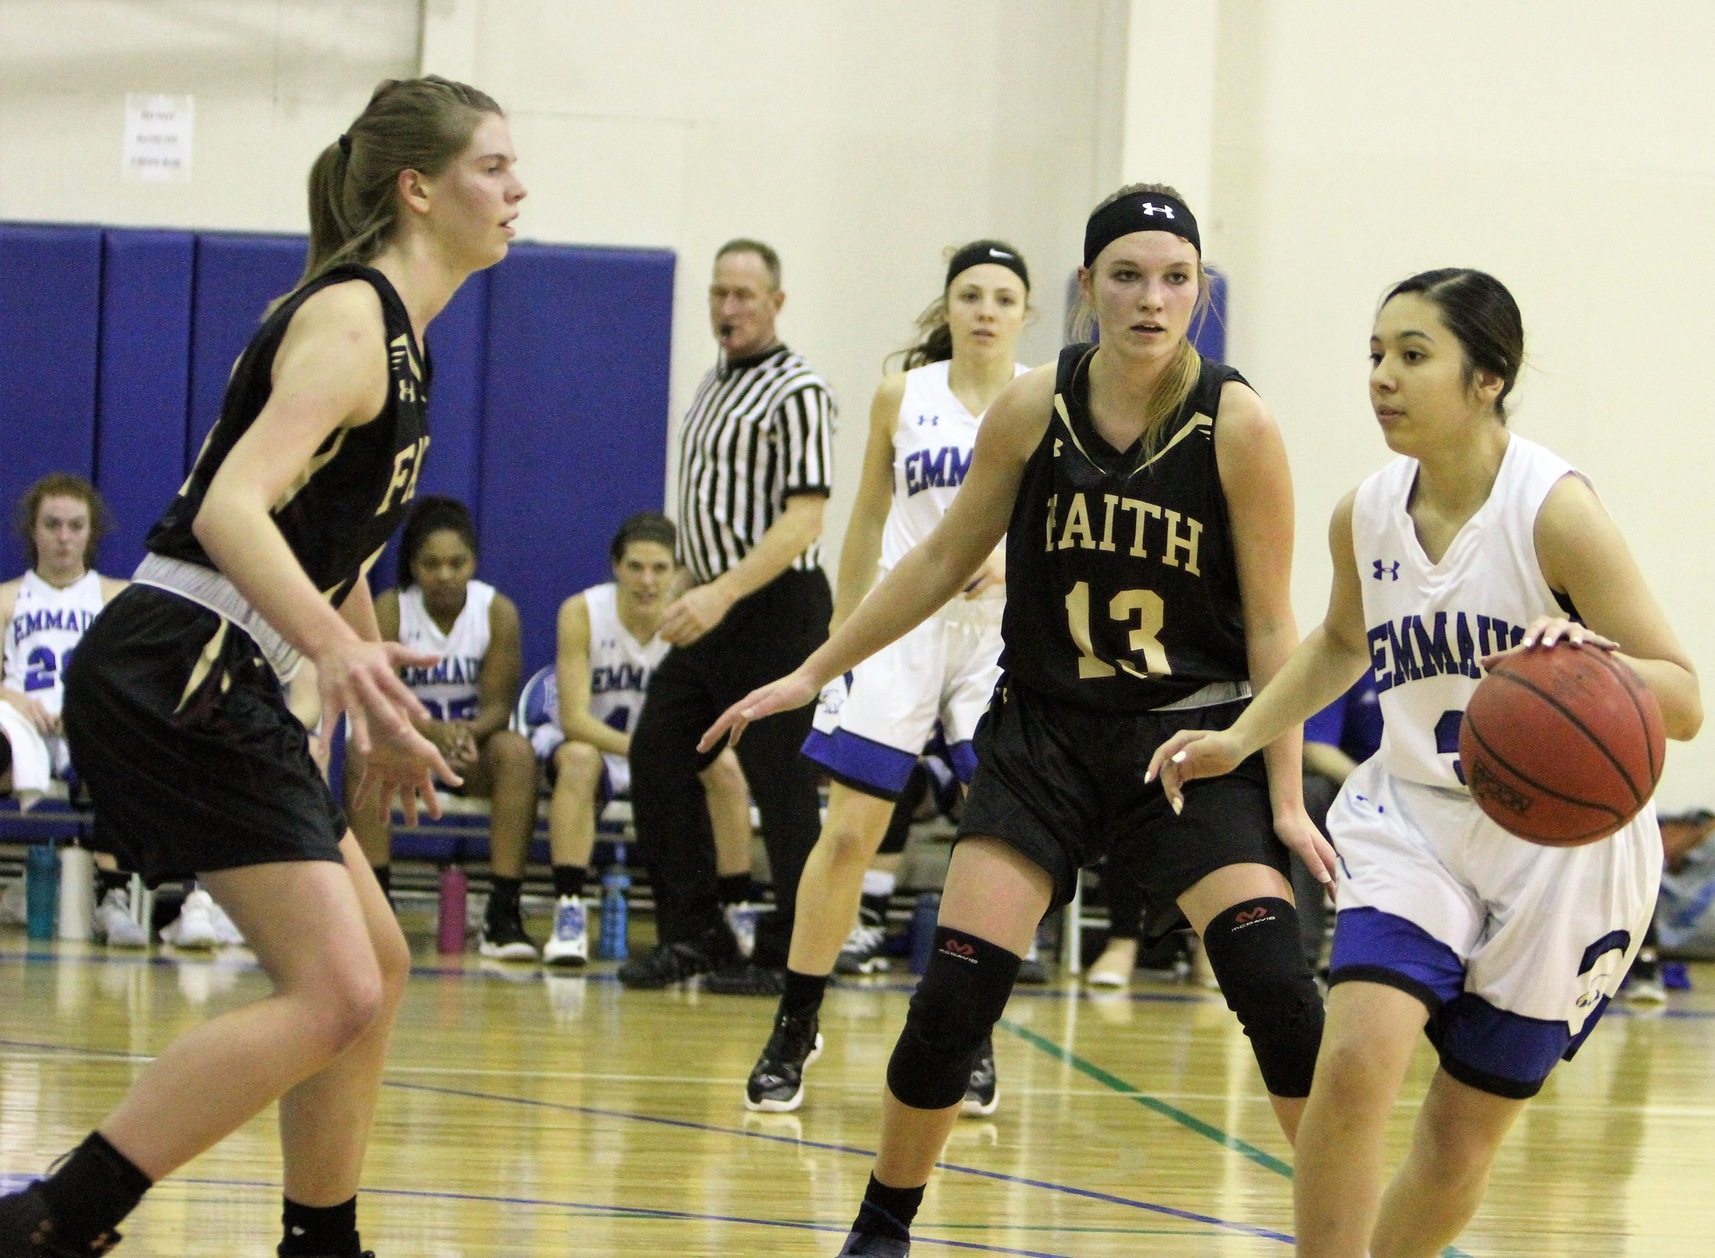 Bekah Smith and Mackenzie Hanson guard an Emmaus player in a 64-23 loss on the road.